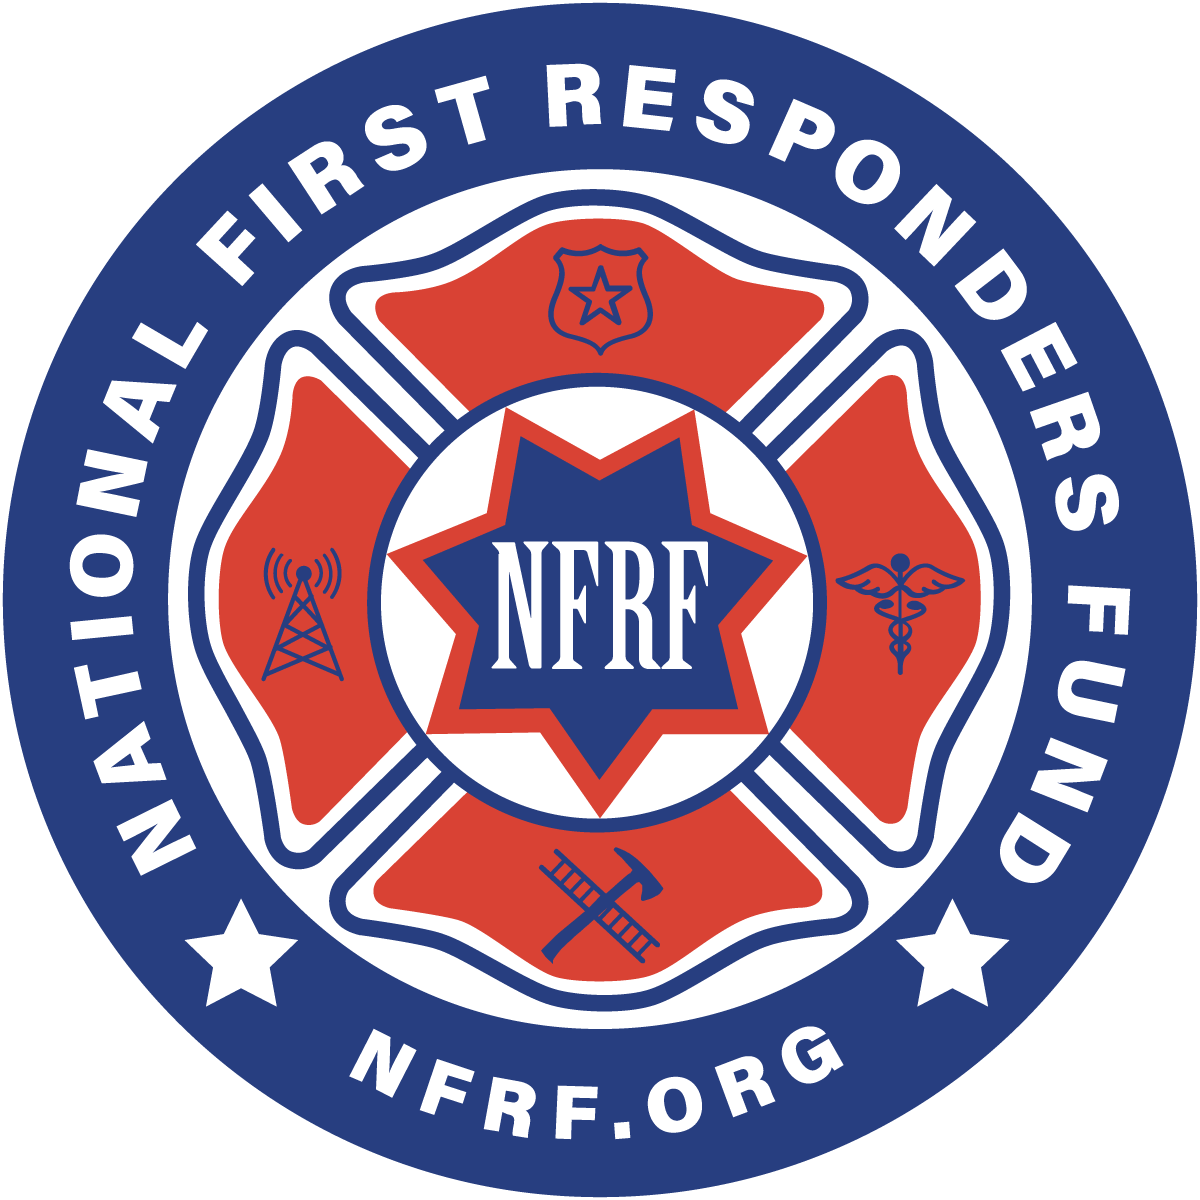 National First Responders Fund logo